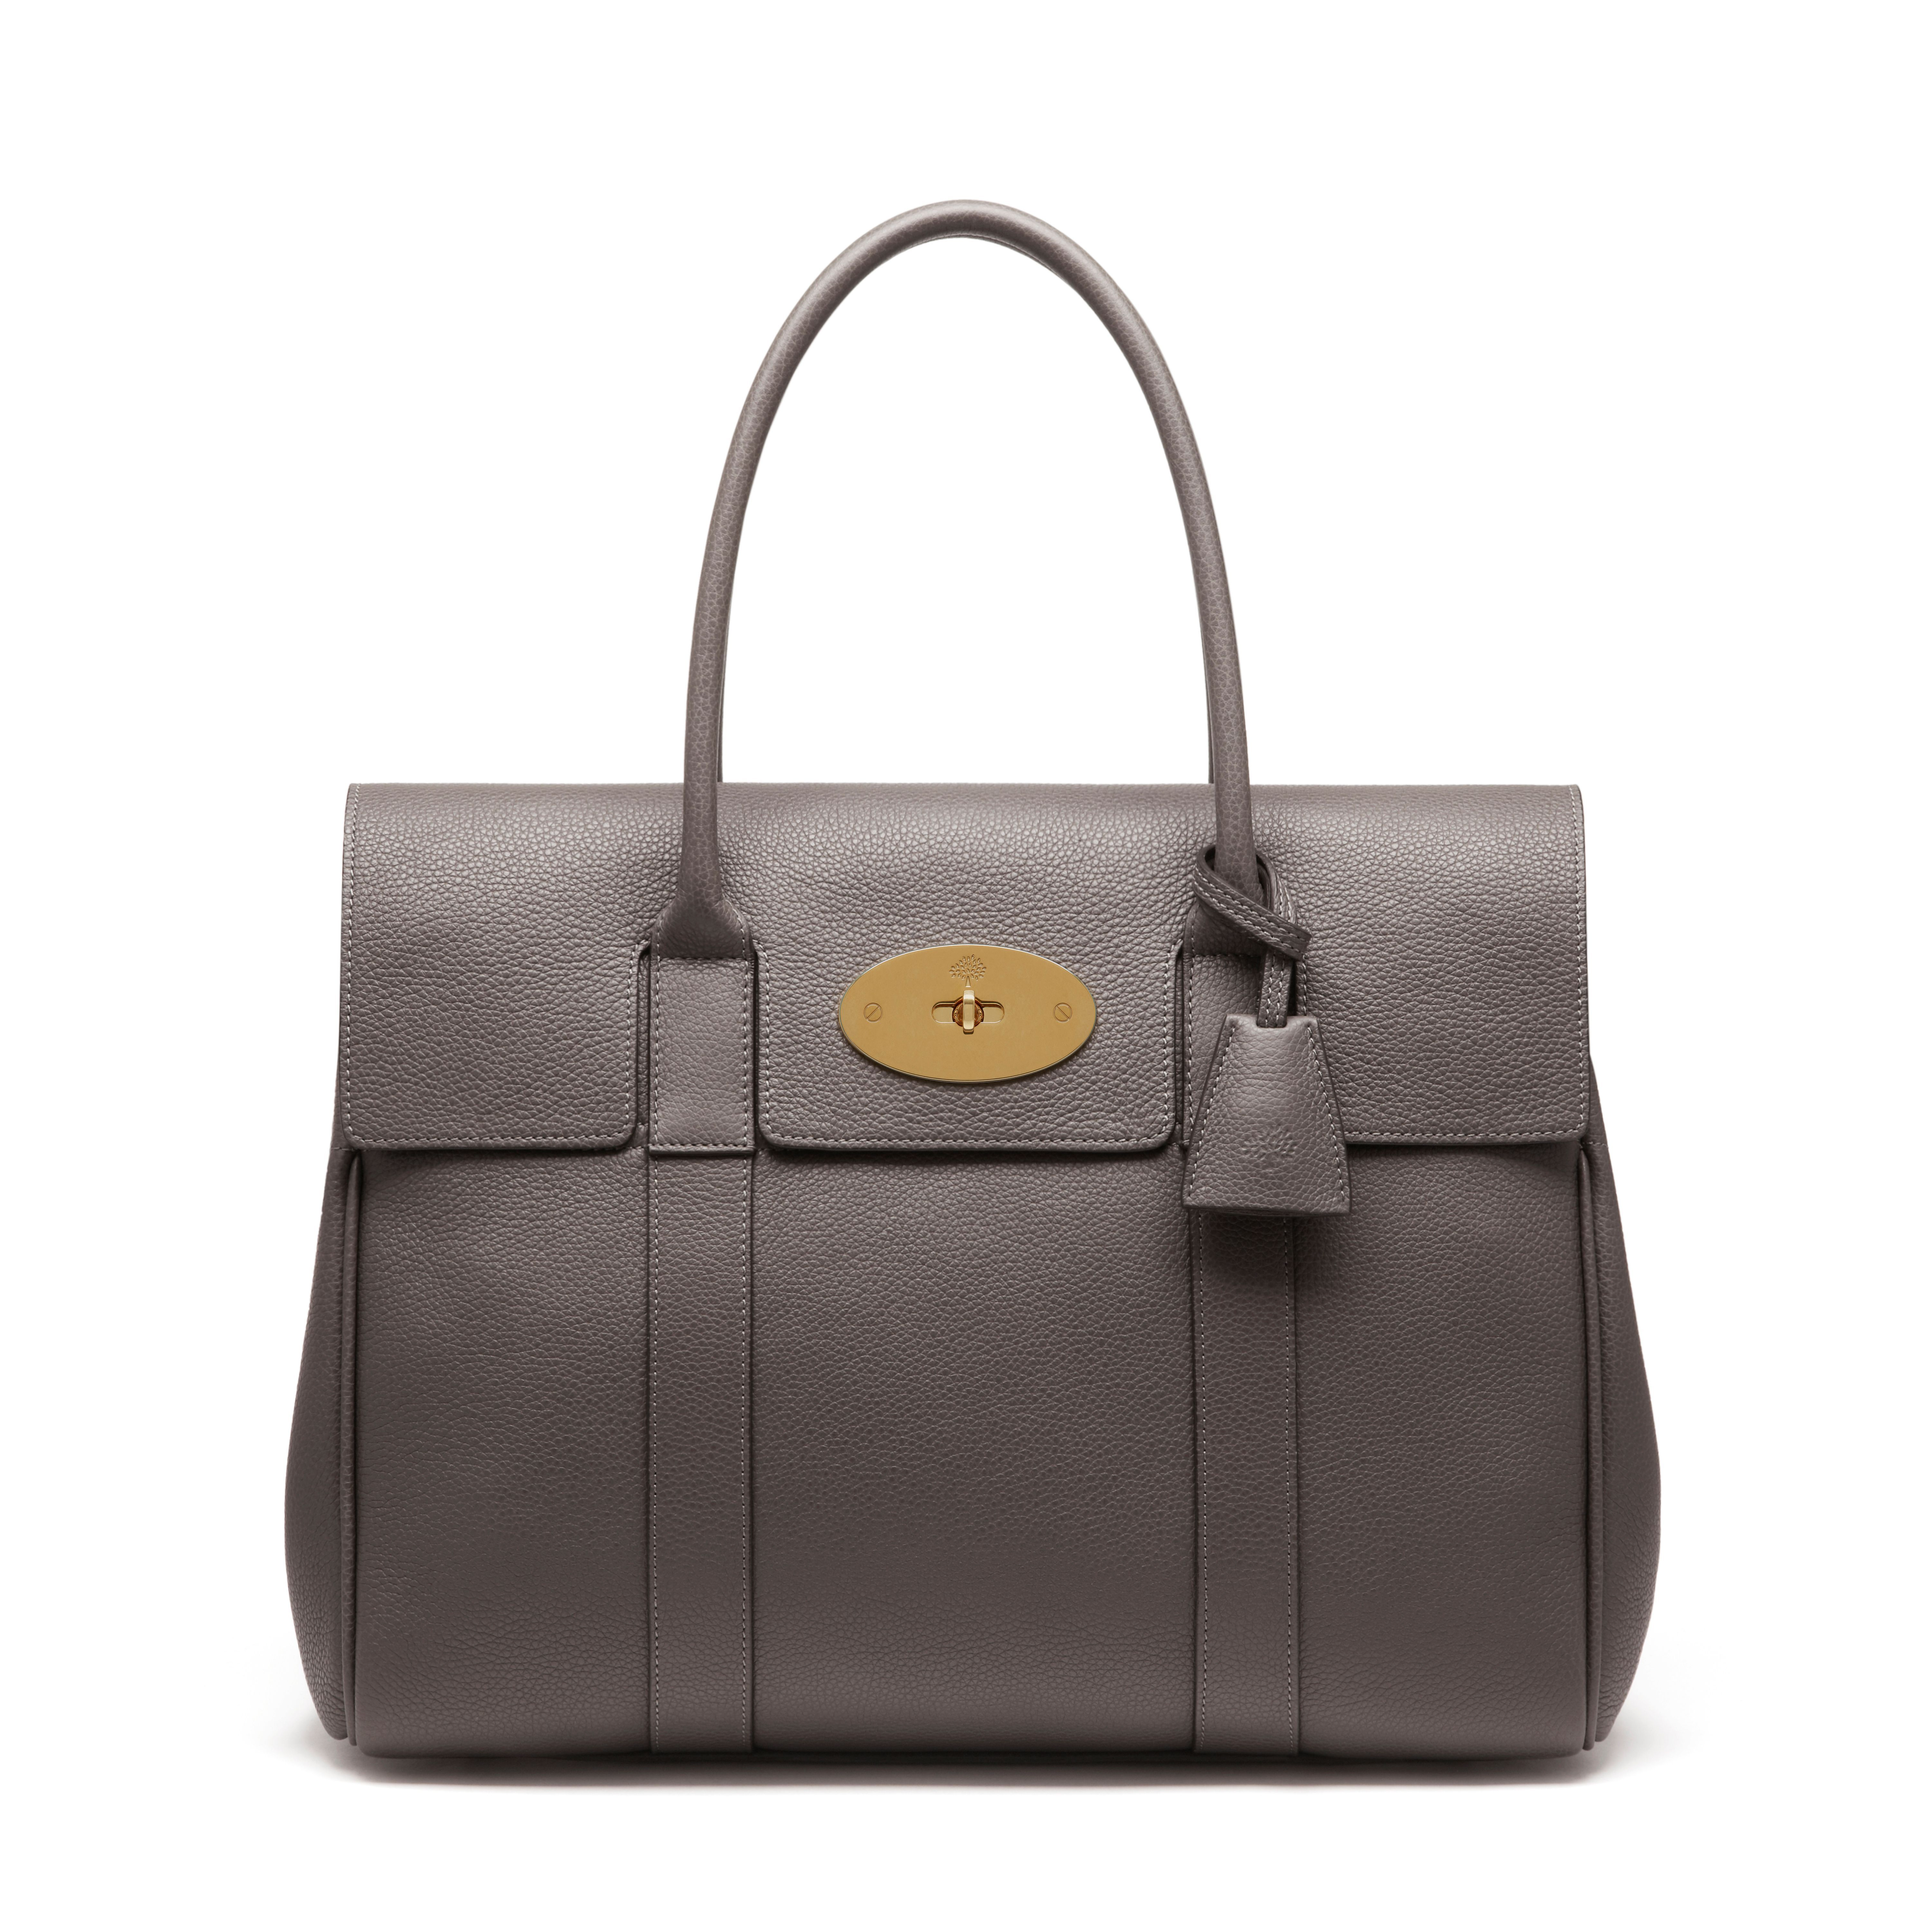 7788f4d830 Mulberry - Bayswater in Dark Grey Small Classic Grain